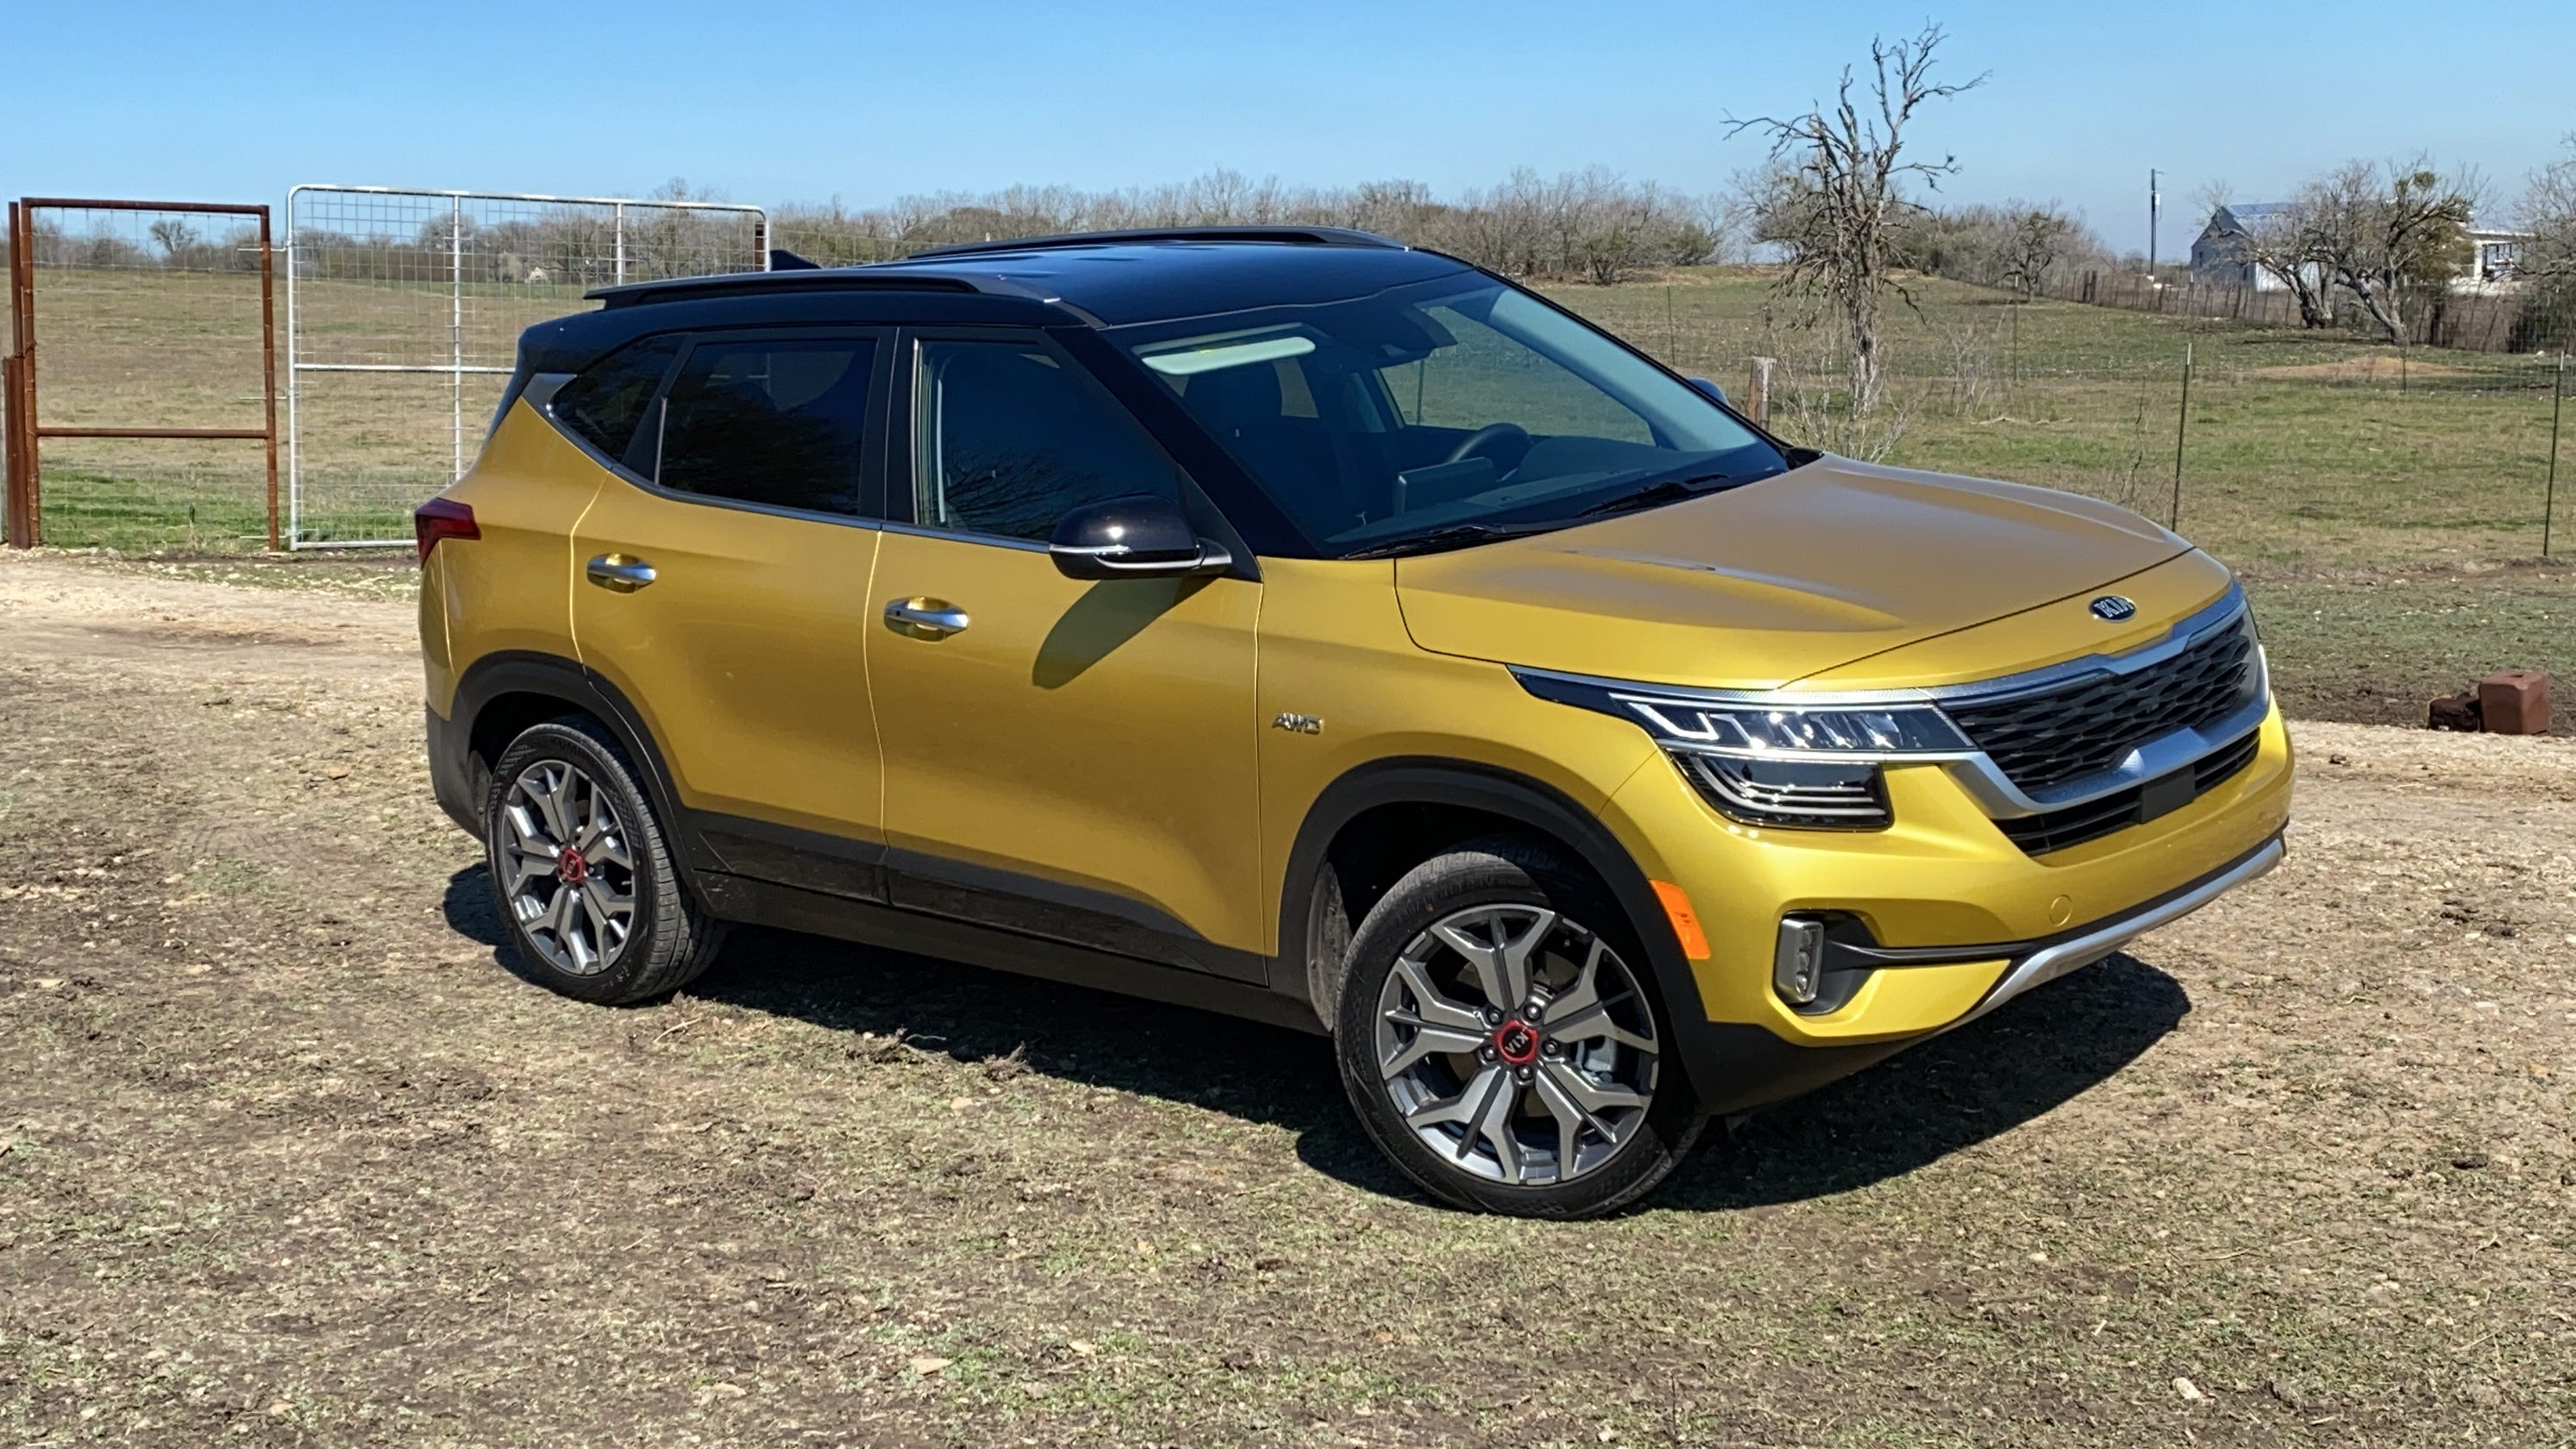 2021 kia seltos brings telluride style to an affordable